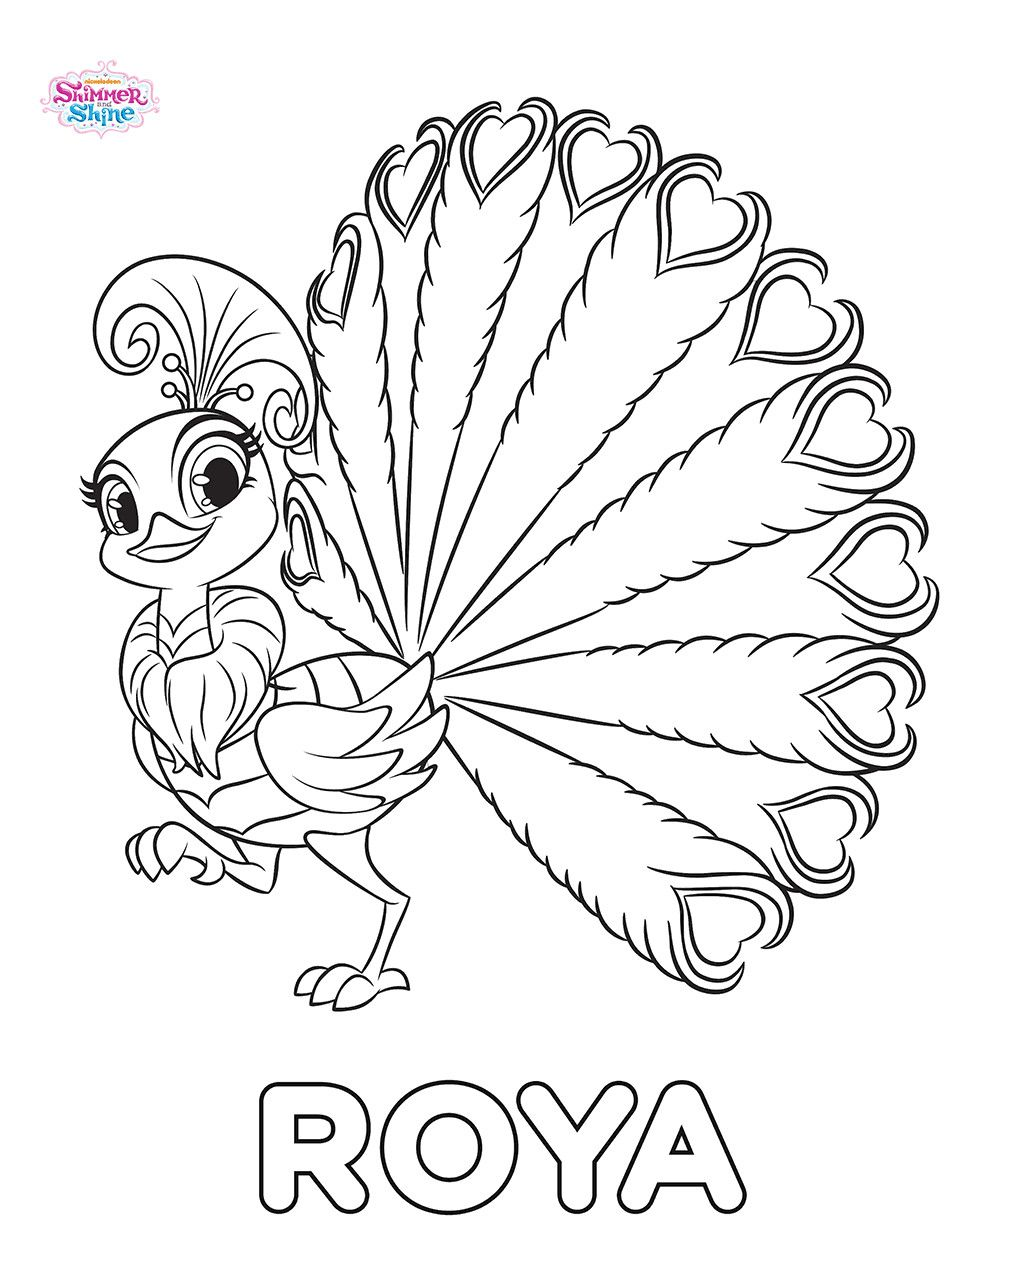 Shimmer And Shine Coloring Page Lovely Shimmer And Shine Coloring Pages Omalovanky In 2020 With Images Peacock Coloring Pages Coloring Pages To Print